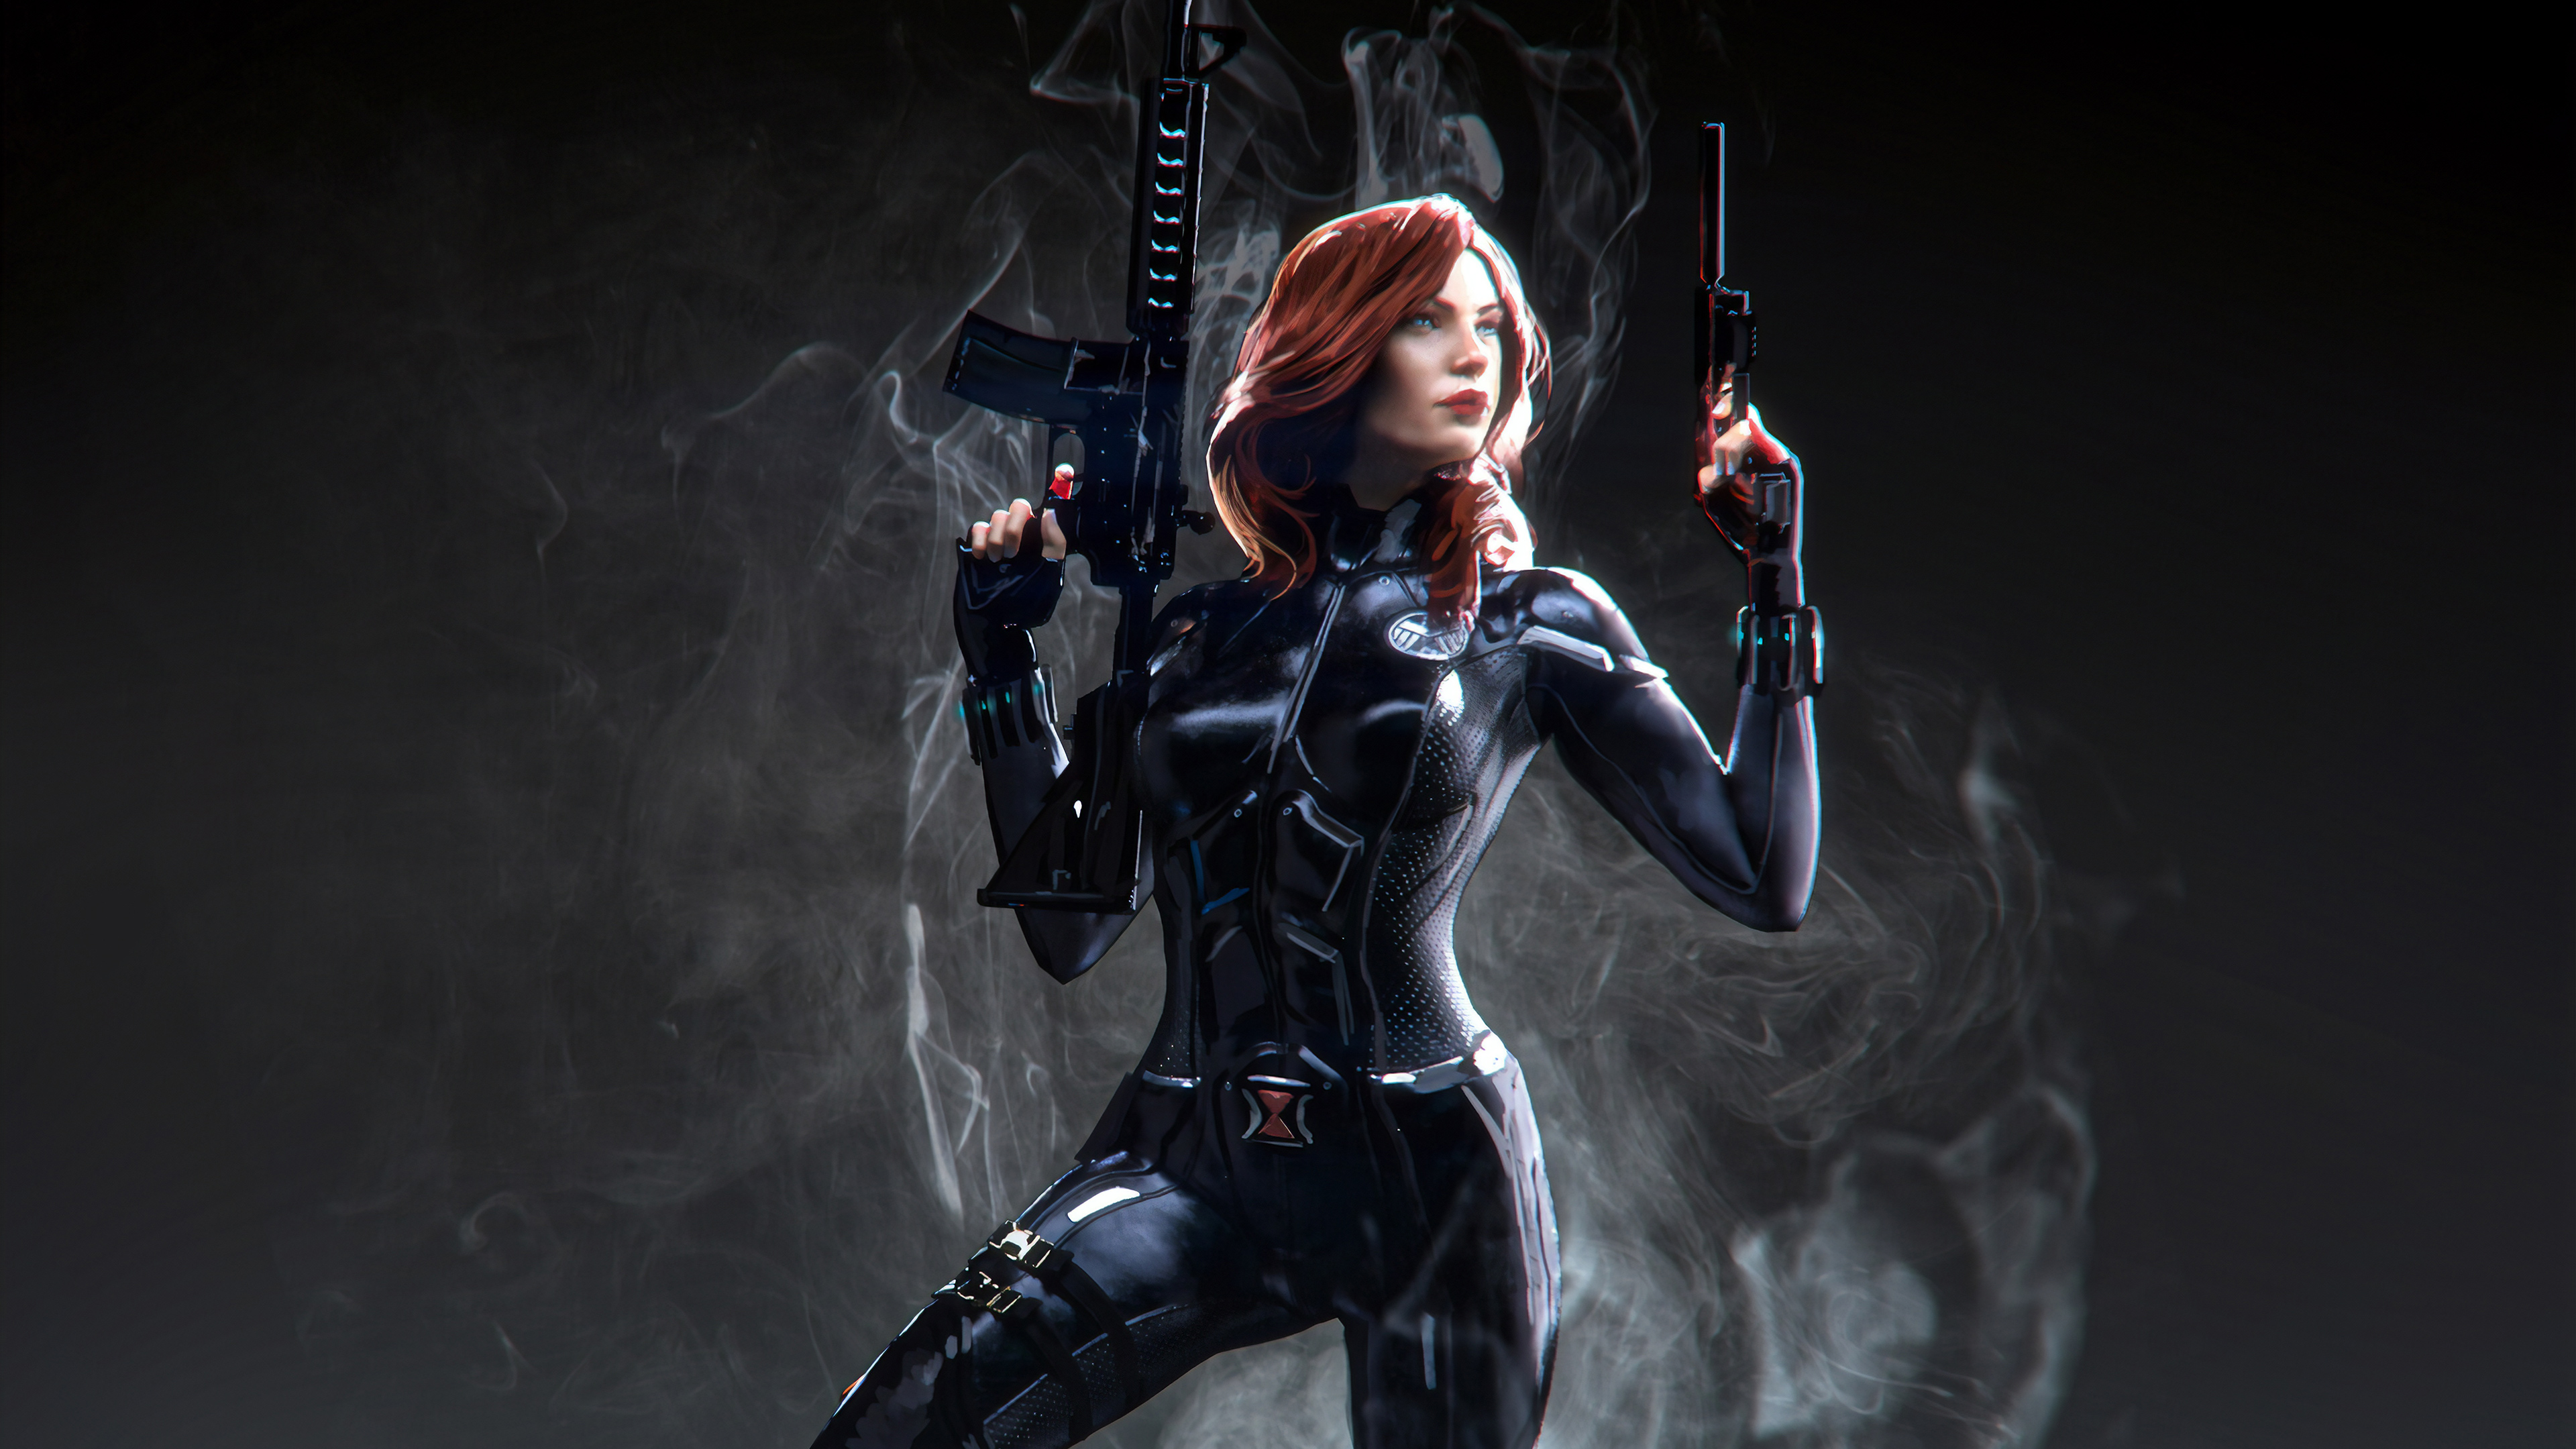 Wallpaper 4k Black Widow Marvel Superhero 4k Wallpapers